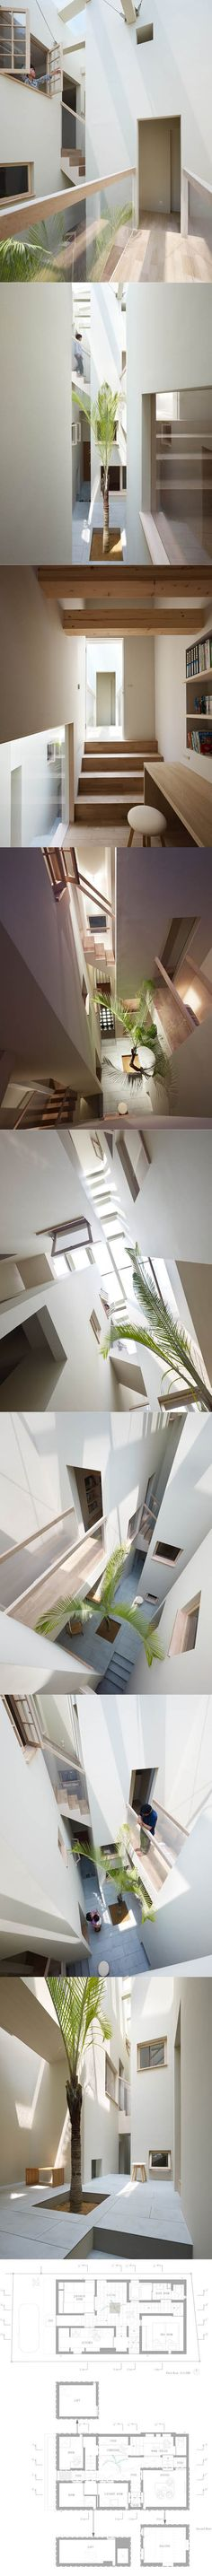 2013 Fujiwaramuro - House in Goido / white / wood